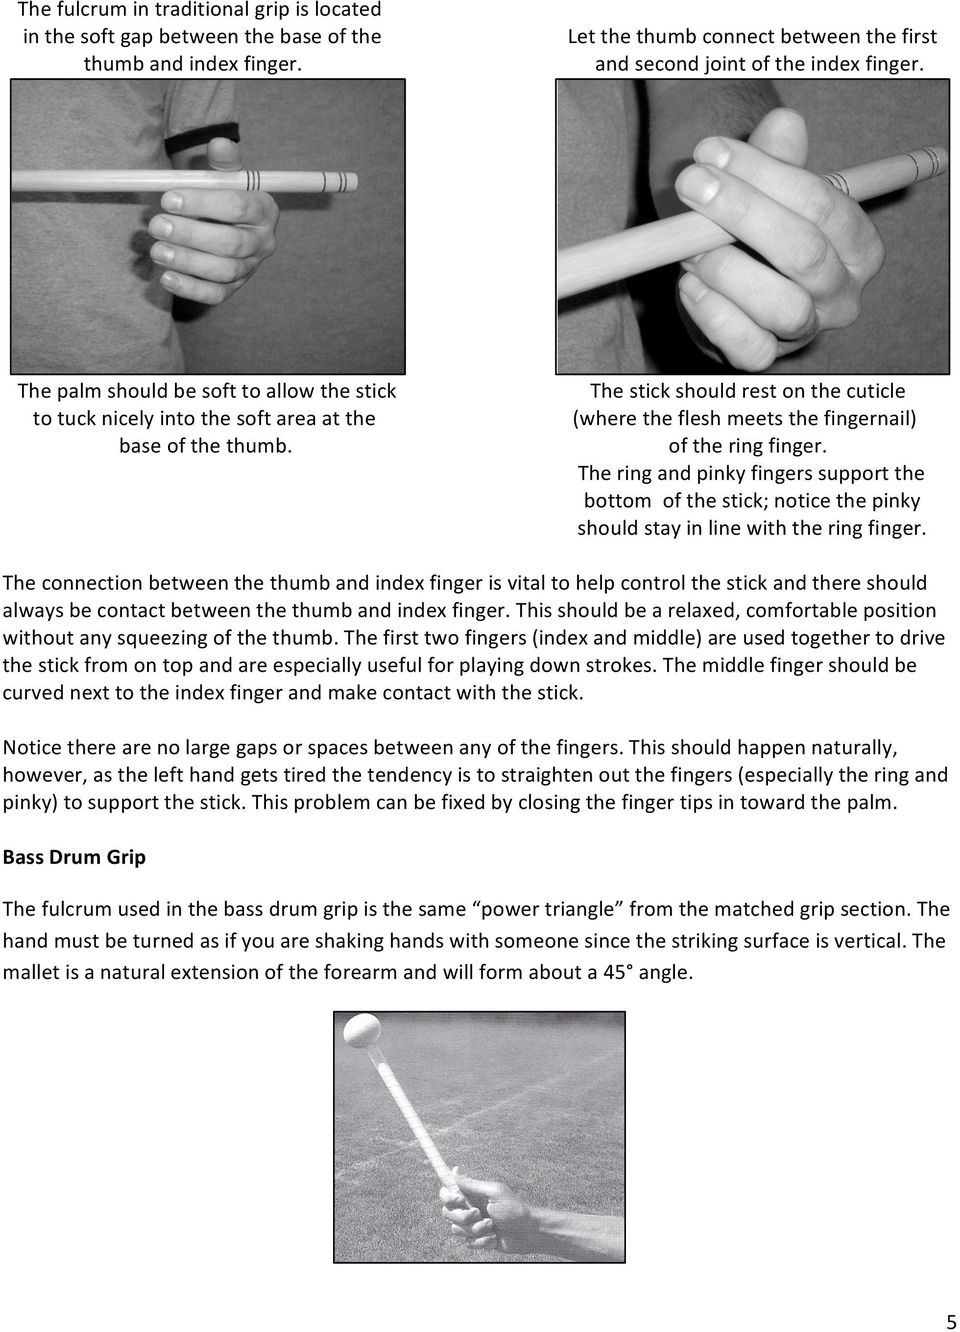 The ring and pinky fingers support the bottom of the stick; notice the pinky should stay in line with the ring finger.